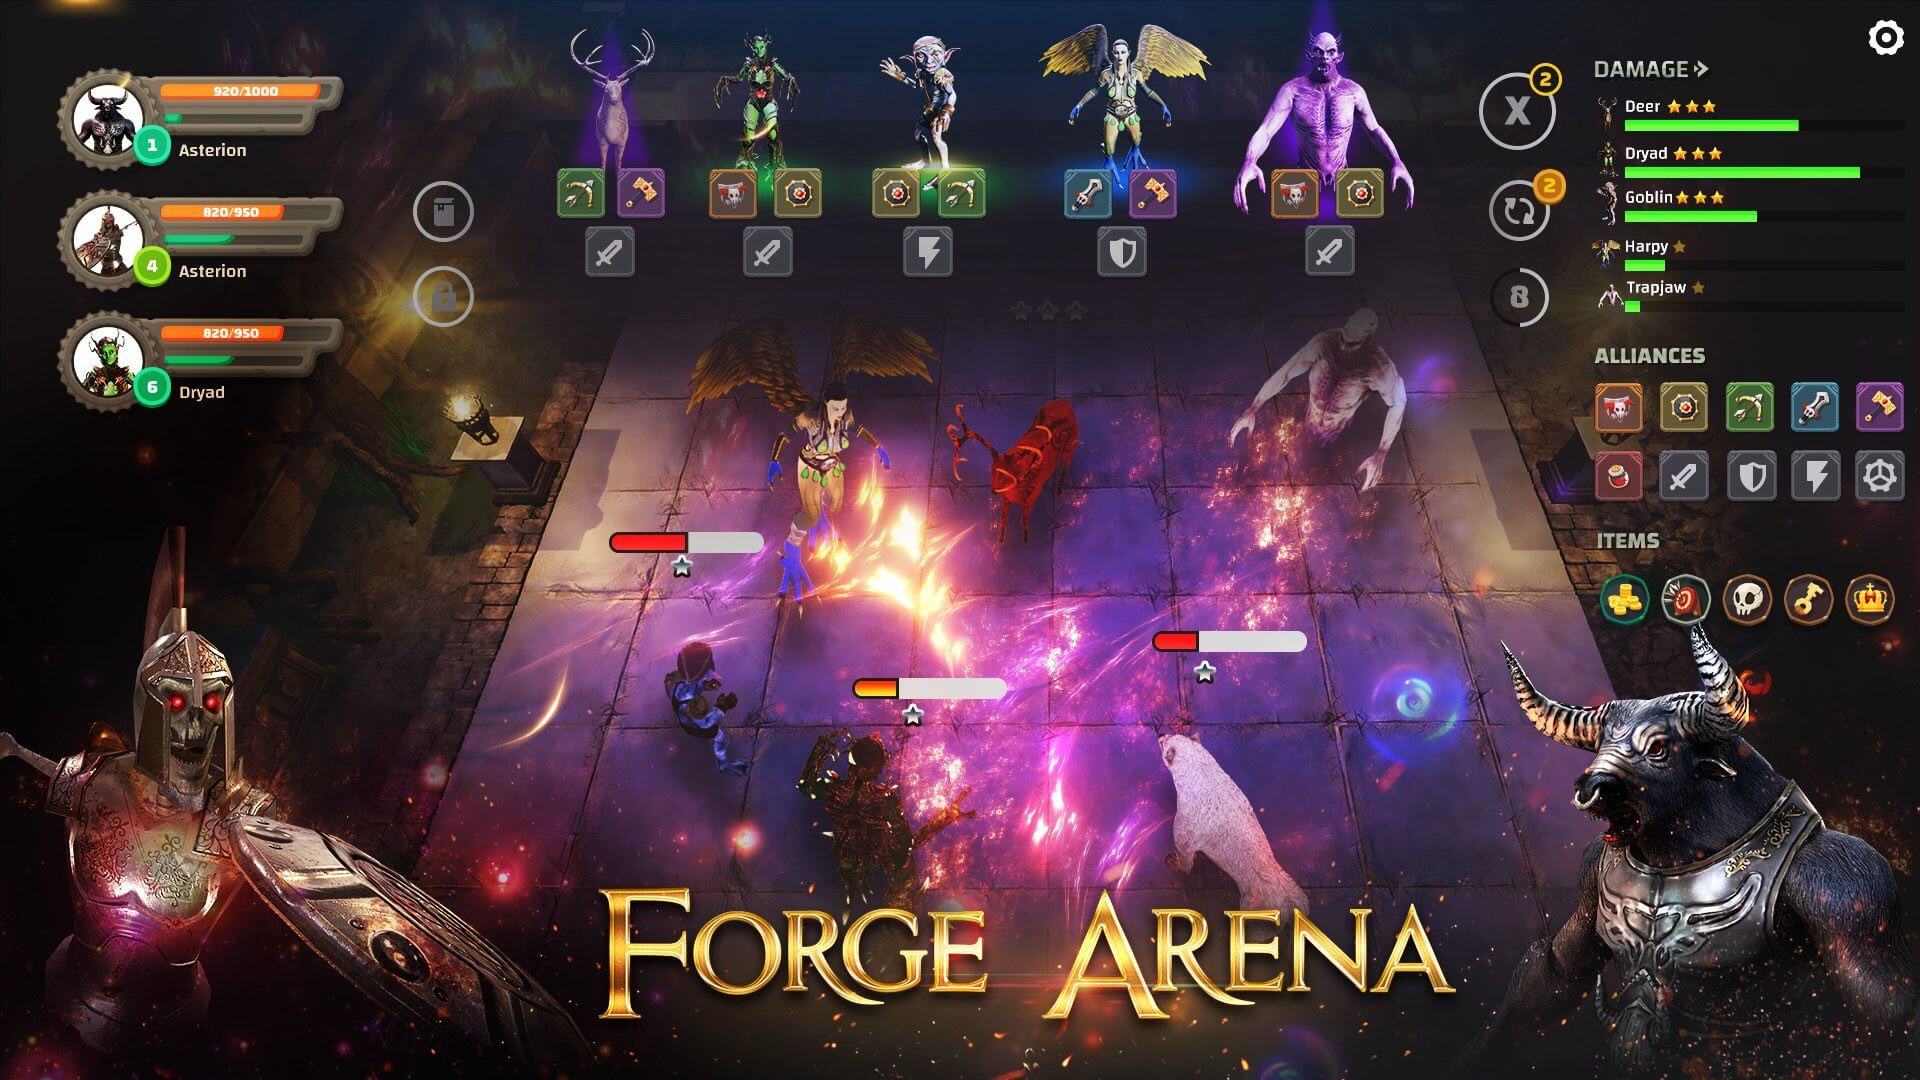 Forge Arena